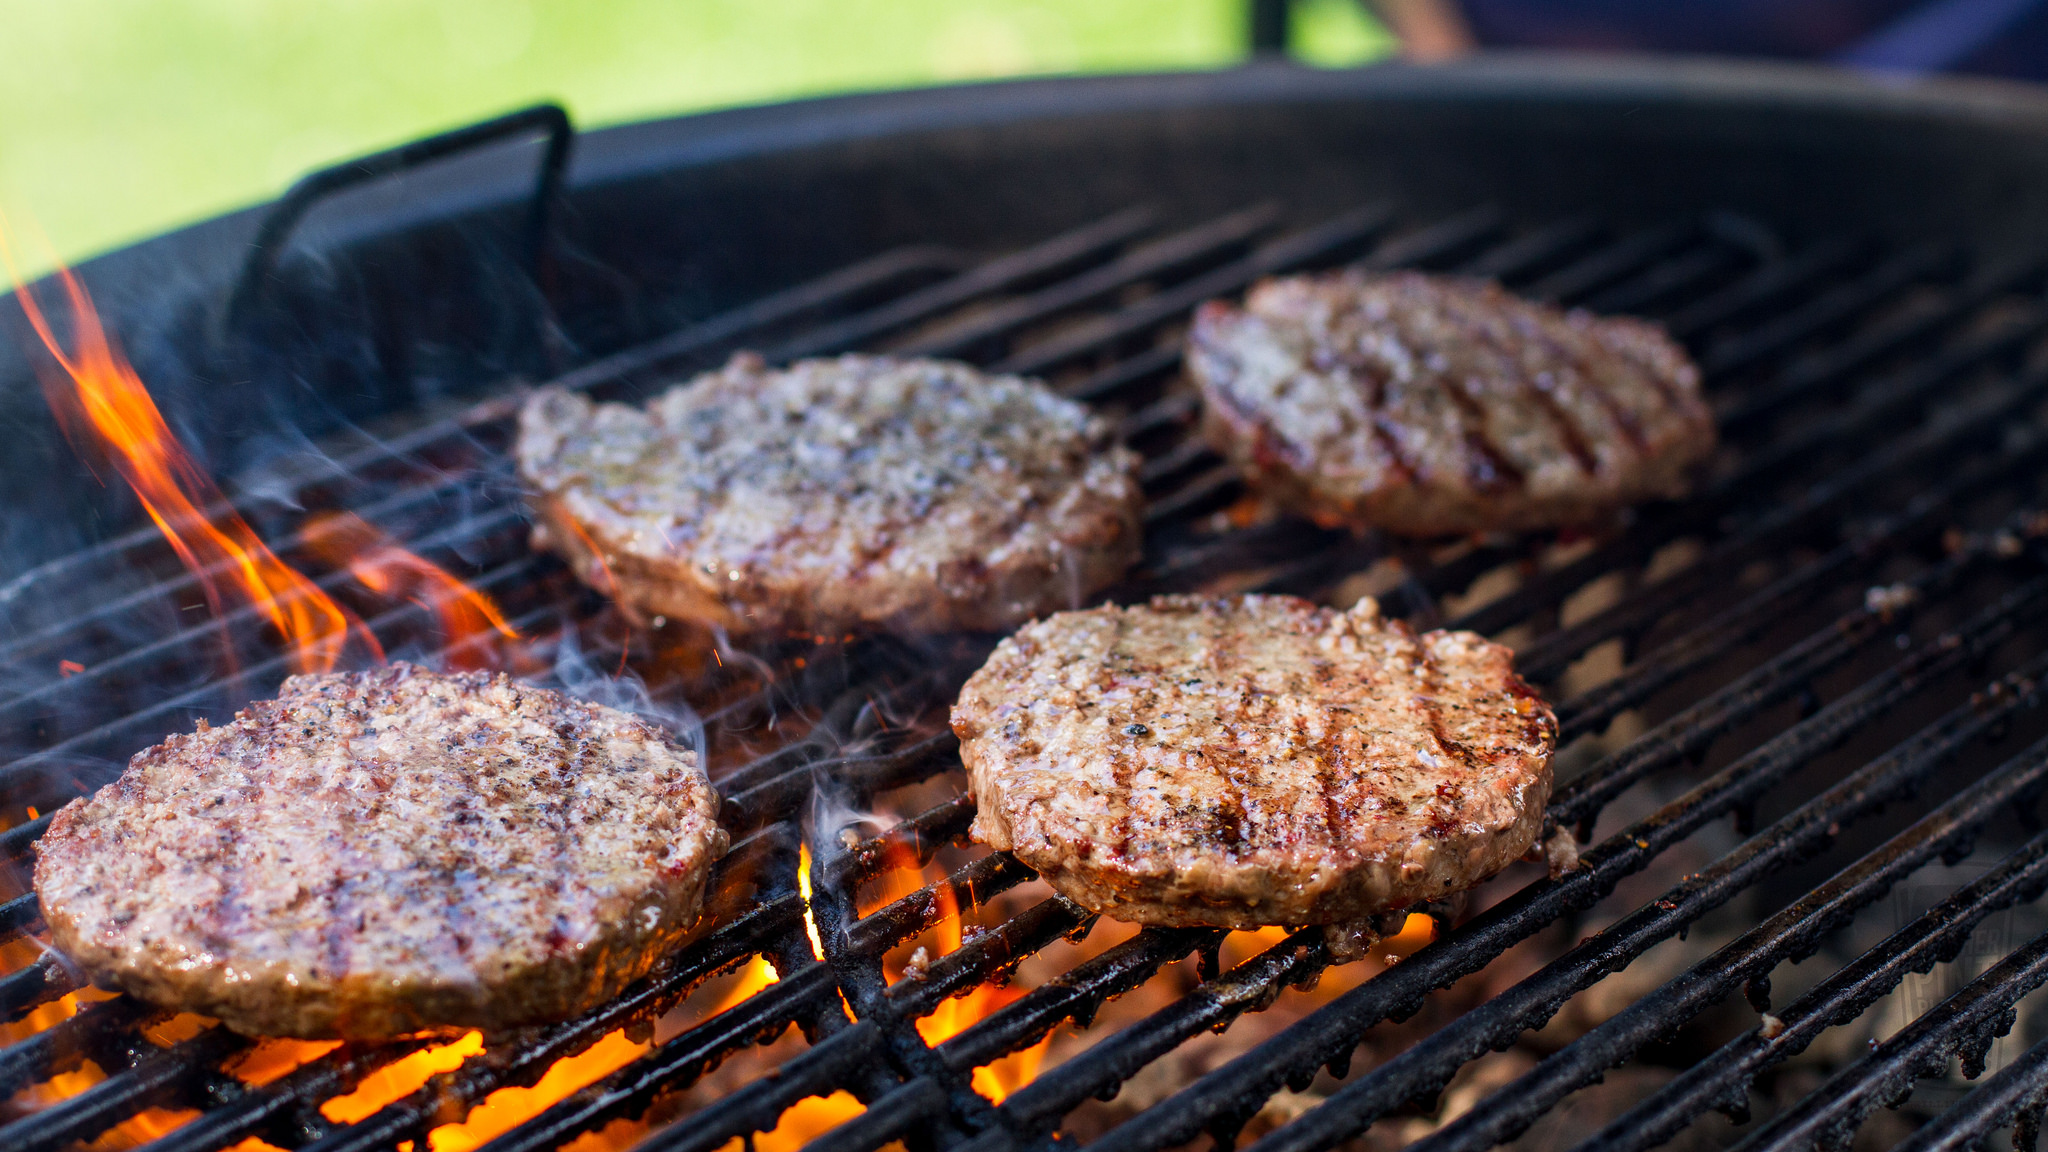 burgers on weber summit charcoal grill.jpghttps://www.flickr.com/photos/anotherpintplease/30252890562